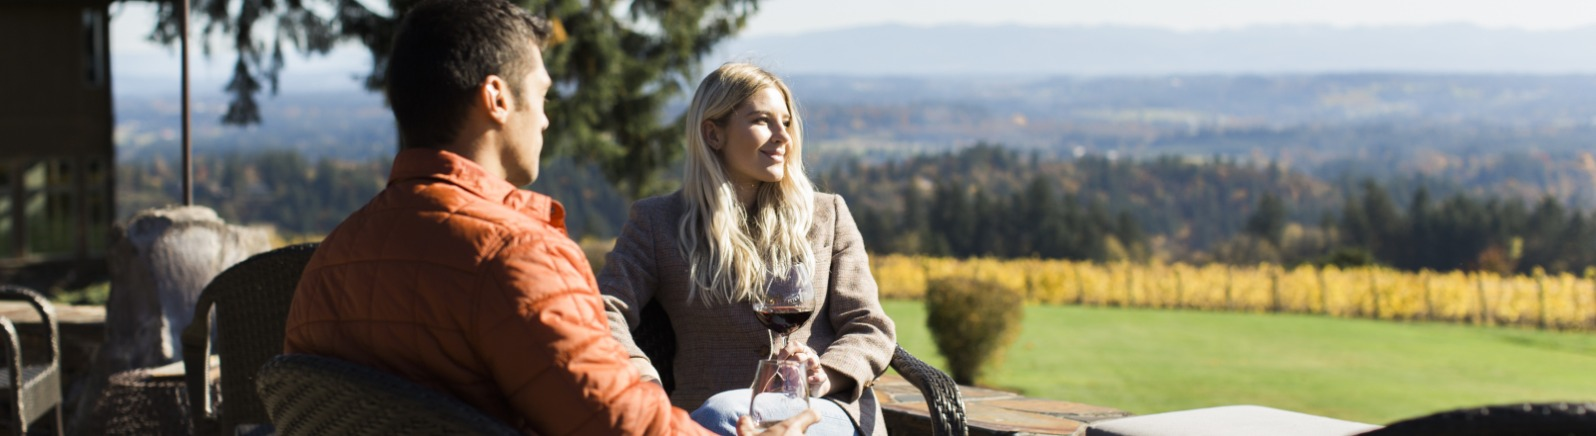 Outdoor wine tasting at Pete's Mountain Winery